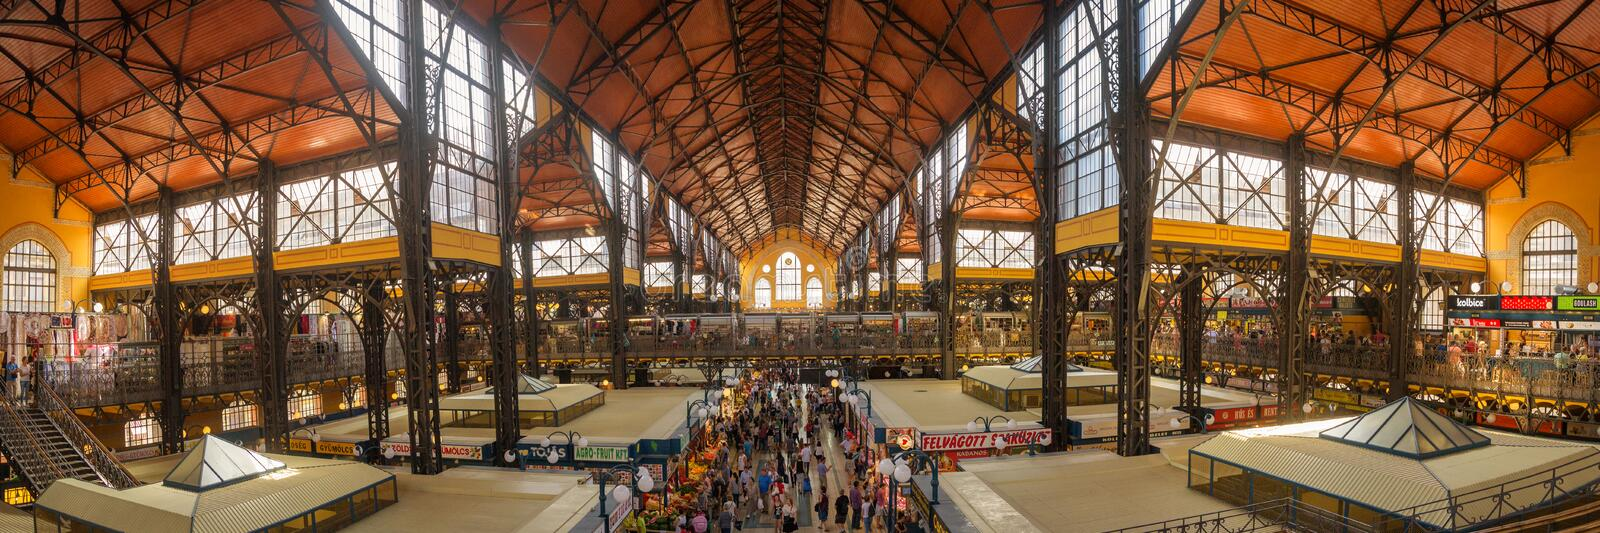 Inside the Central Market of Budapest, a major tourist attraction royalty free stock photography